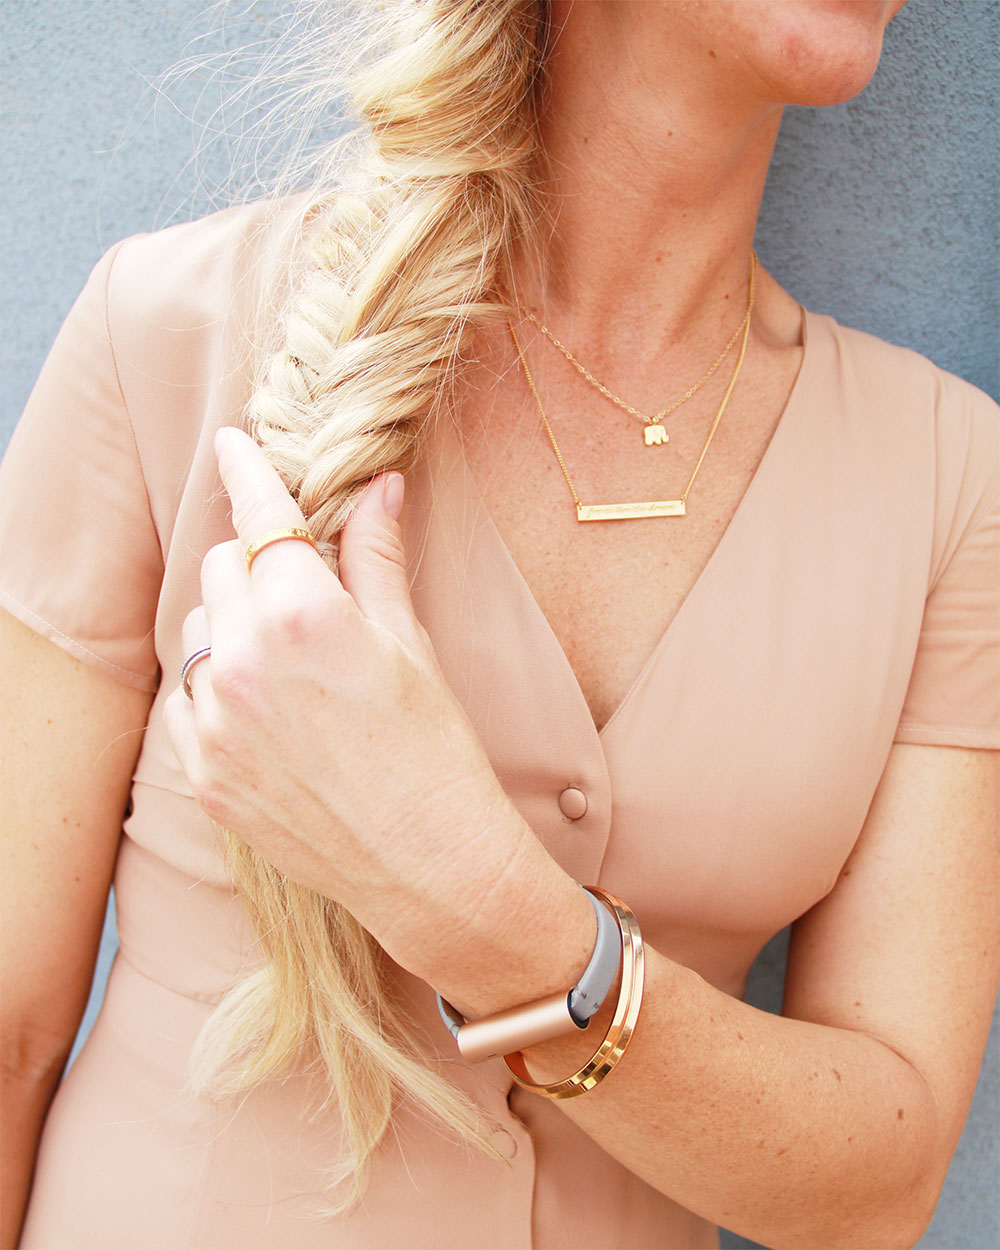 pretty little details. learn more about my rose gold fitness trracker and humanity inspired jewelry on thelovedesignedlife.com